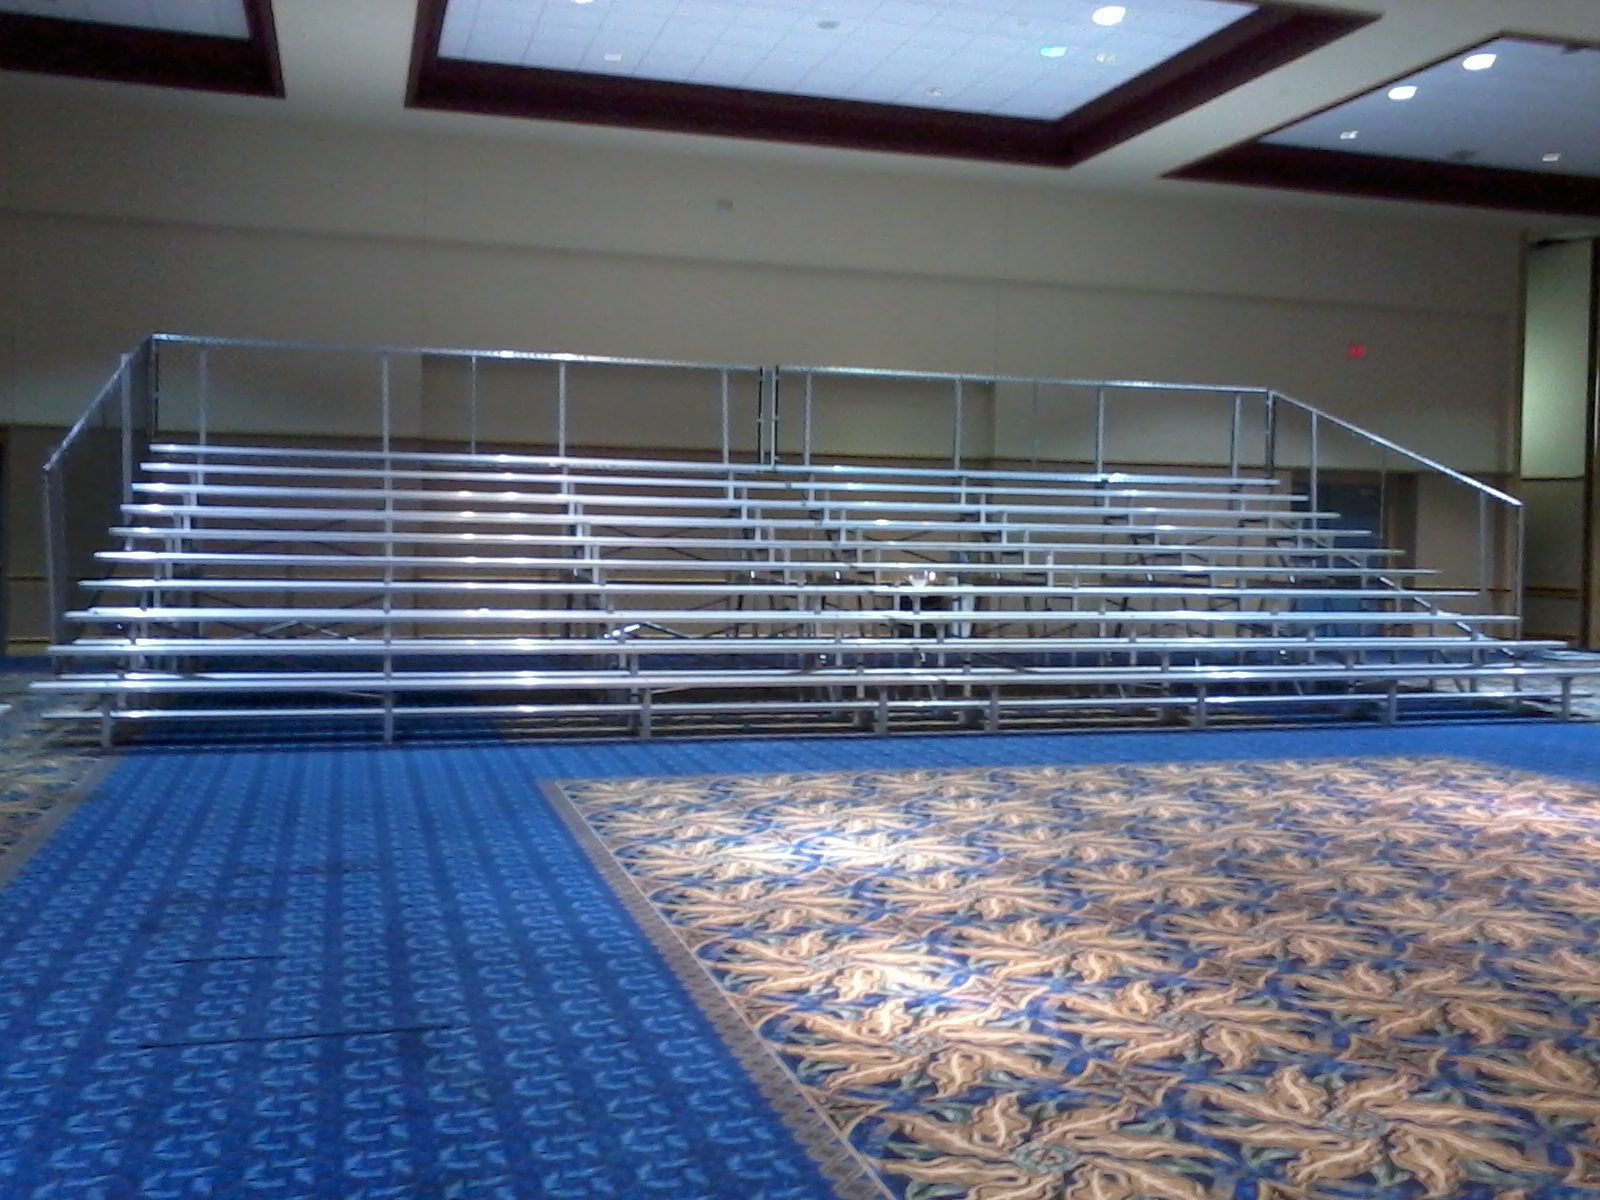 42' long 10row befor the event